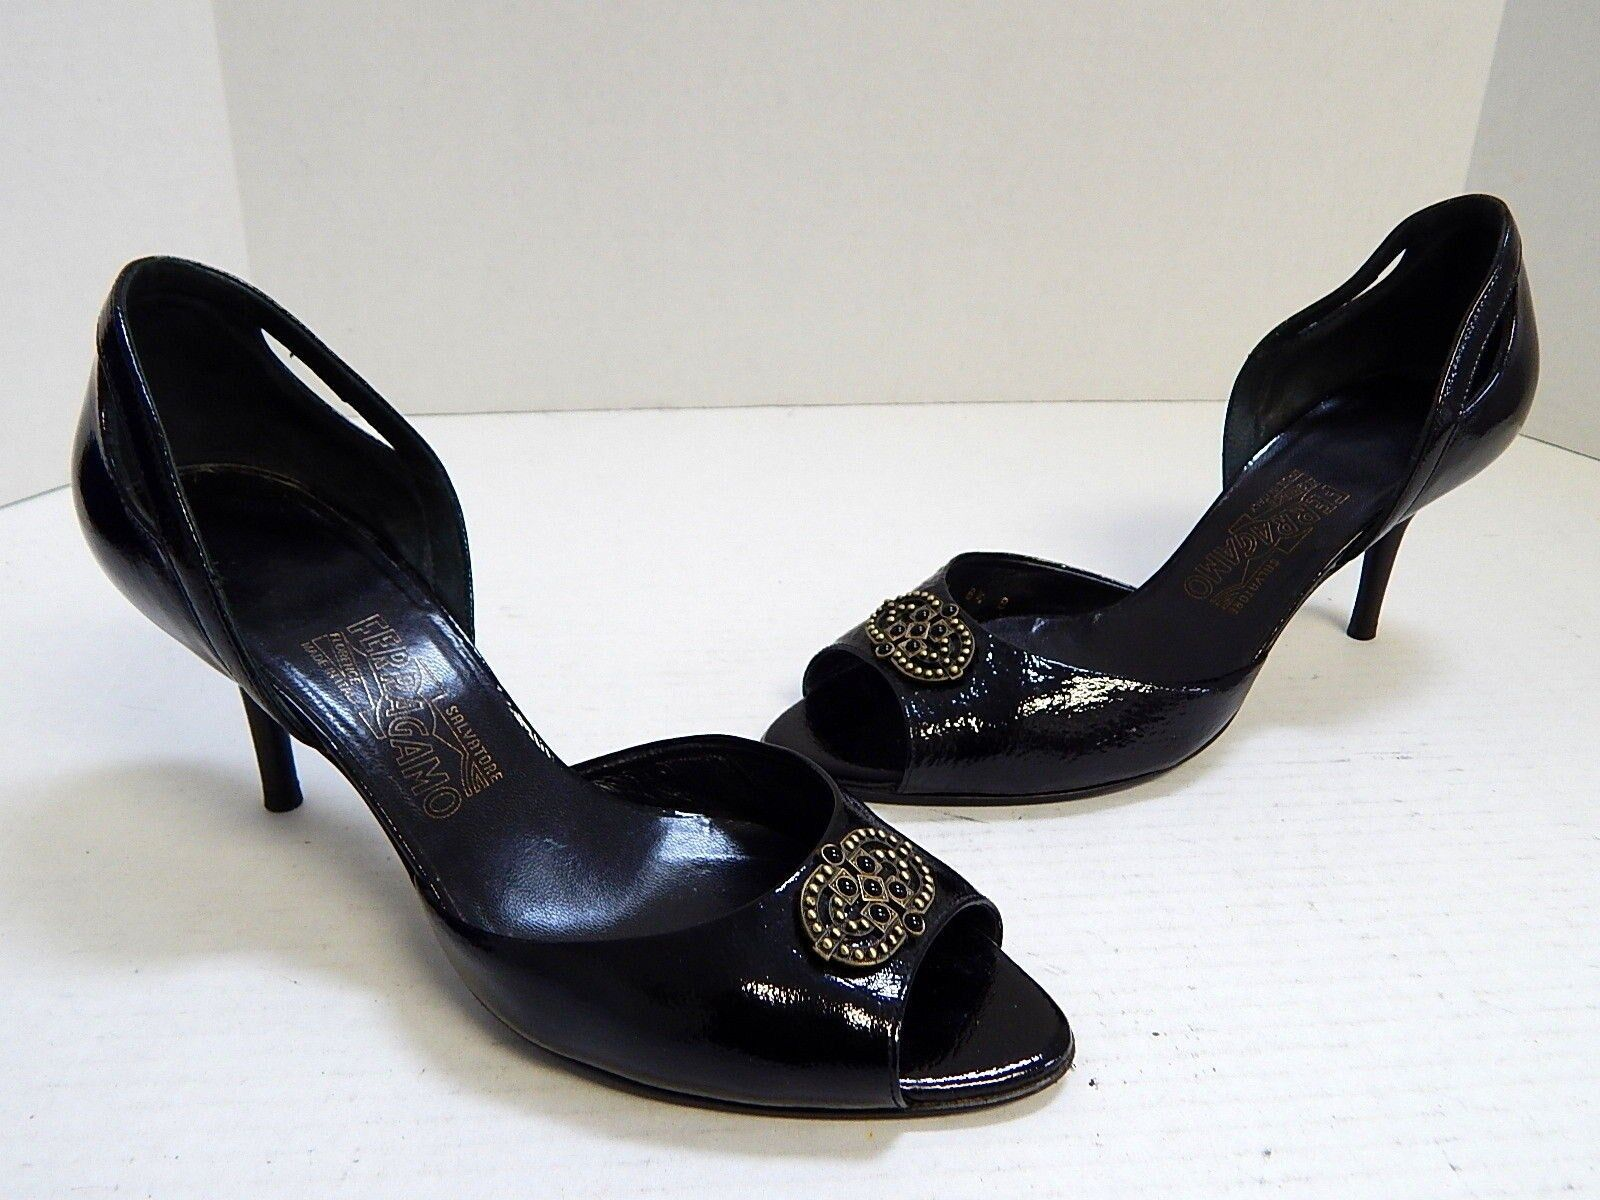 Salvatore Ferragamo Black Krinkle Patent Leather Studded D'orsay Pumps Italy 8.5